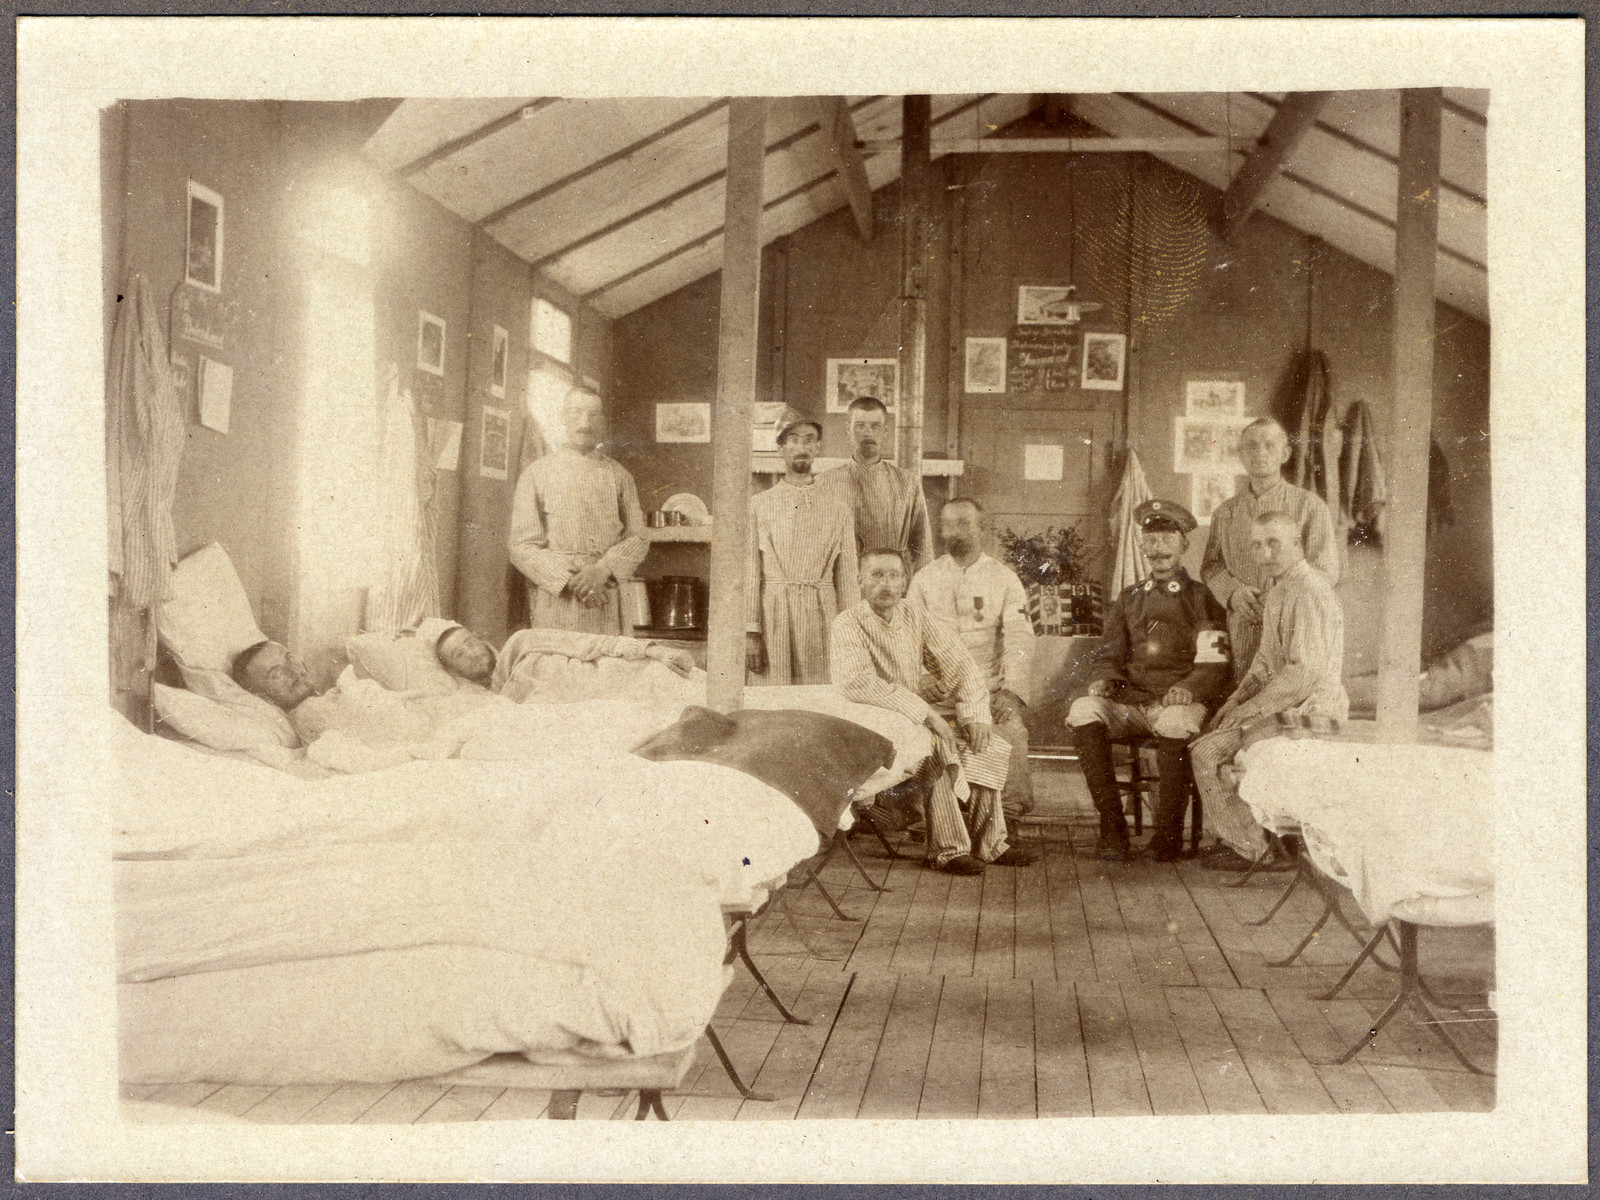 Patients [possibly POWs, ] and mGerman medical officers inside a wooden hospital room.